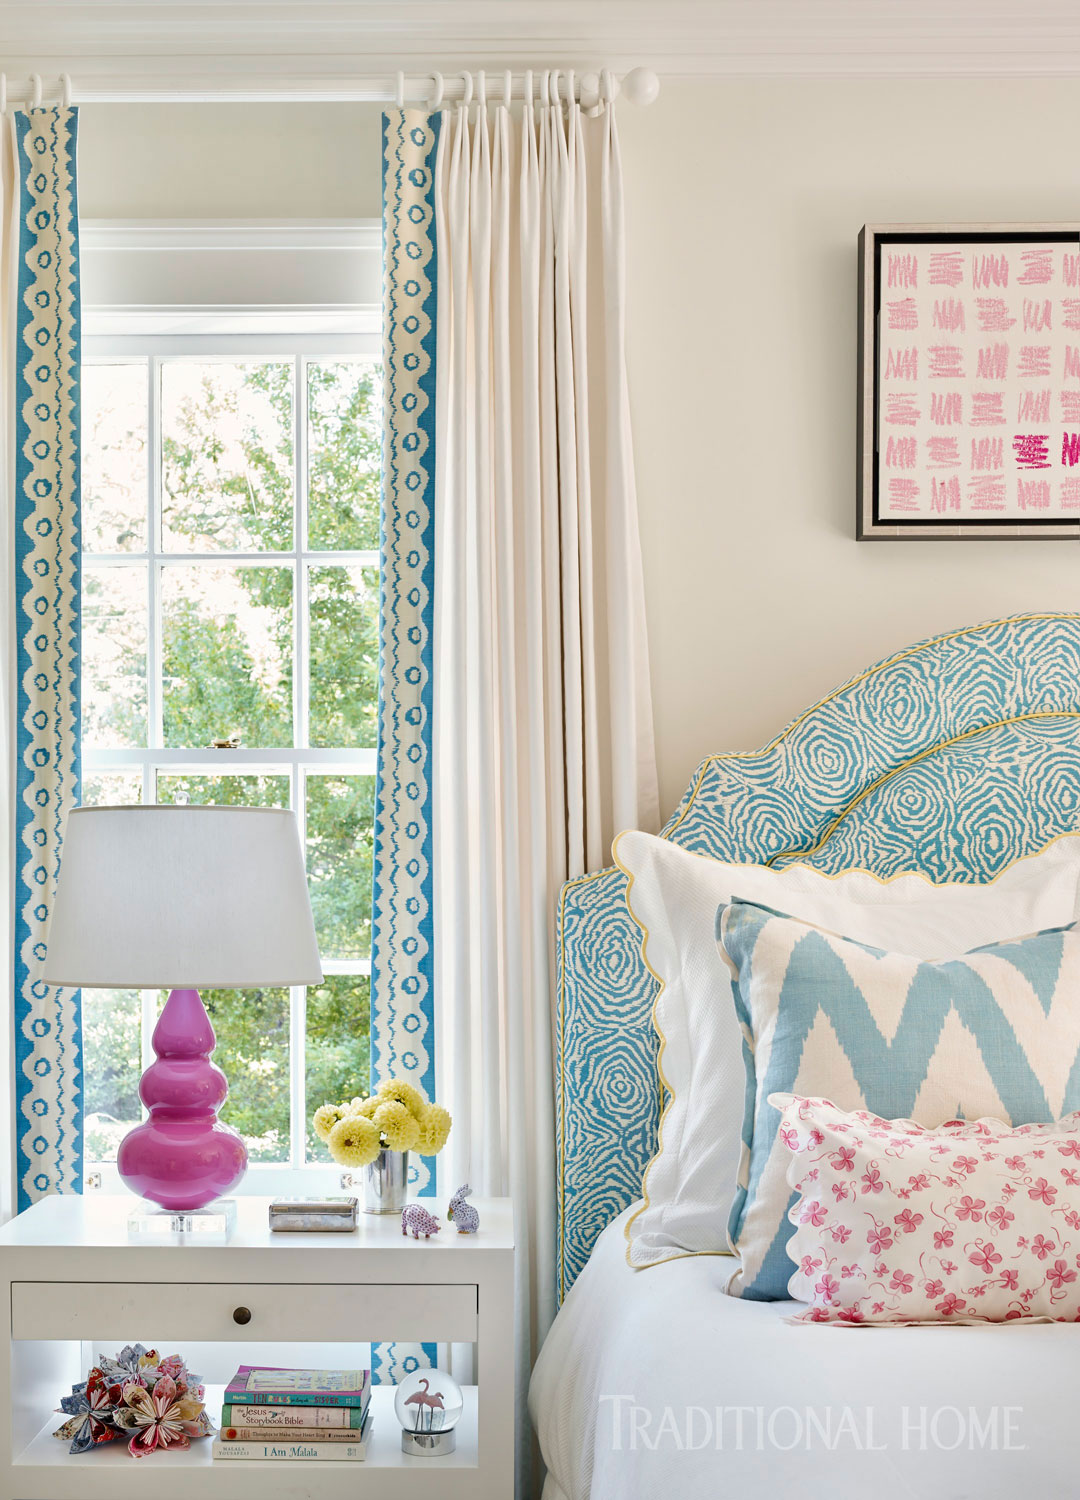 blue, pink, and white bedroom with window